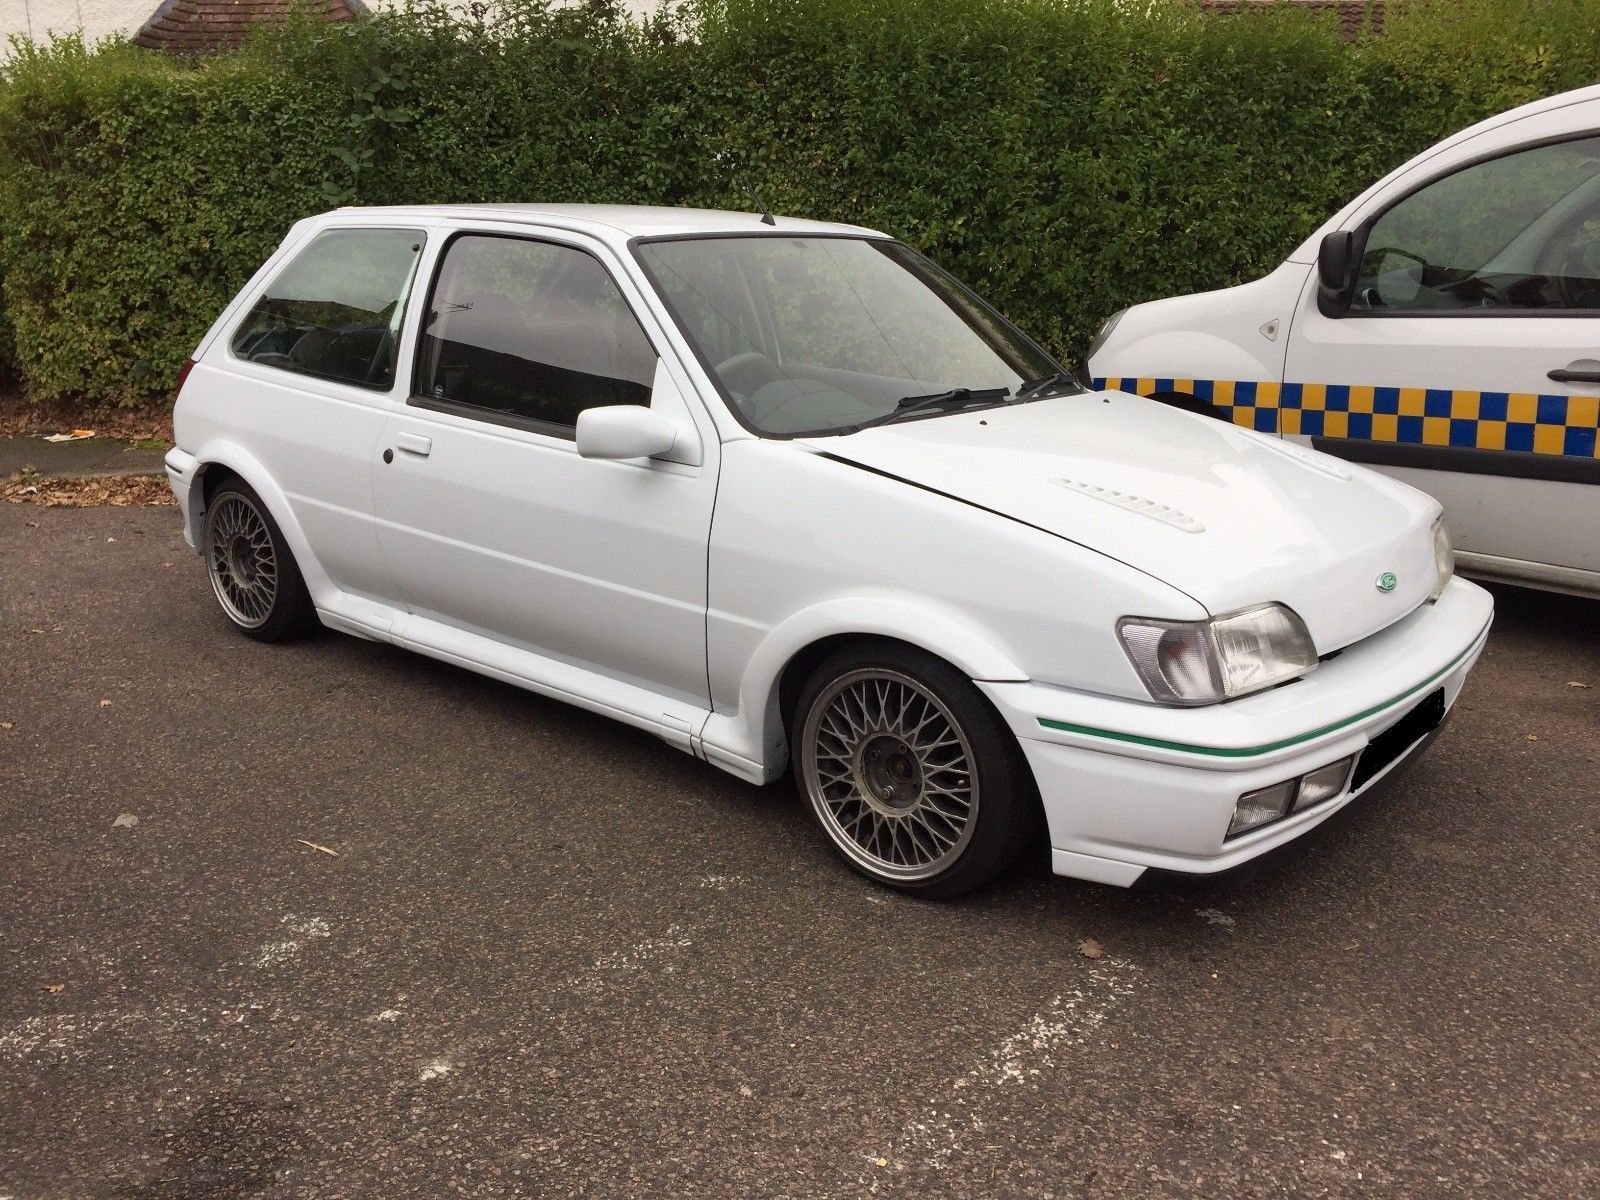 This Fiesta Rs Turbo Replica With Full Rs Turbo Conversion Modified Mot May 2018 Is For Sale Turbo Car Turbo Cool Cars